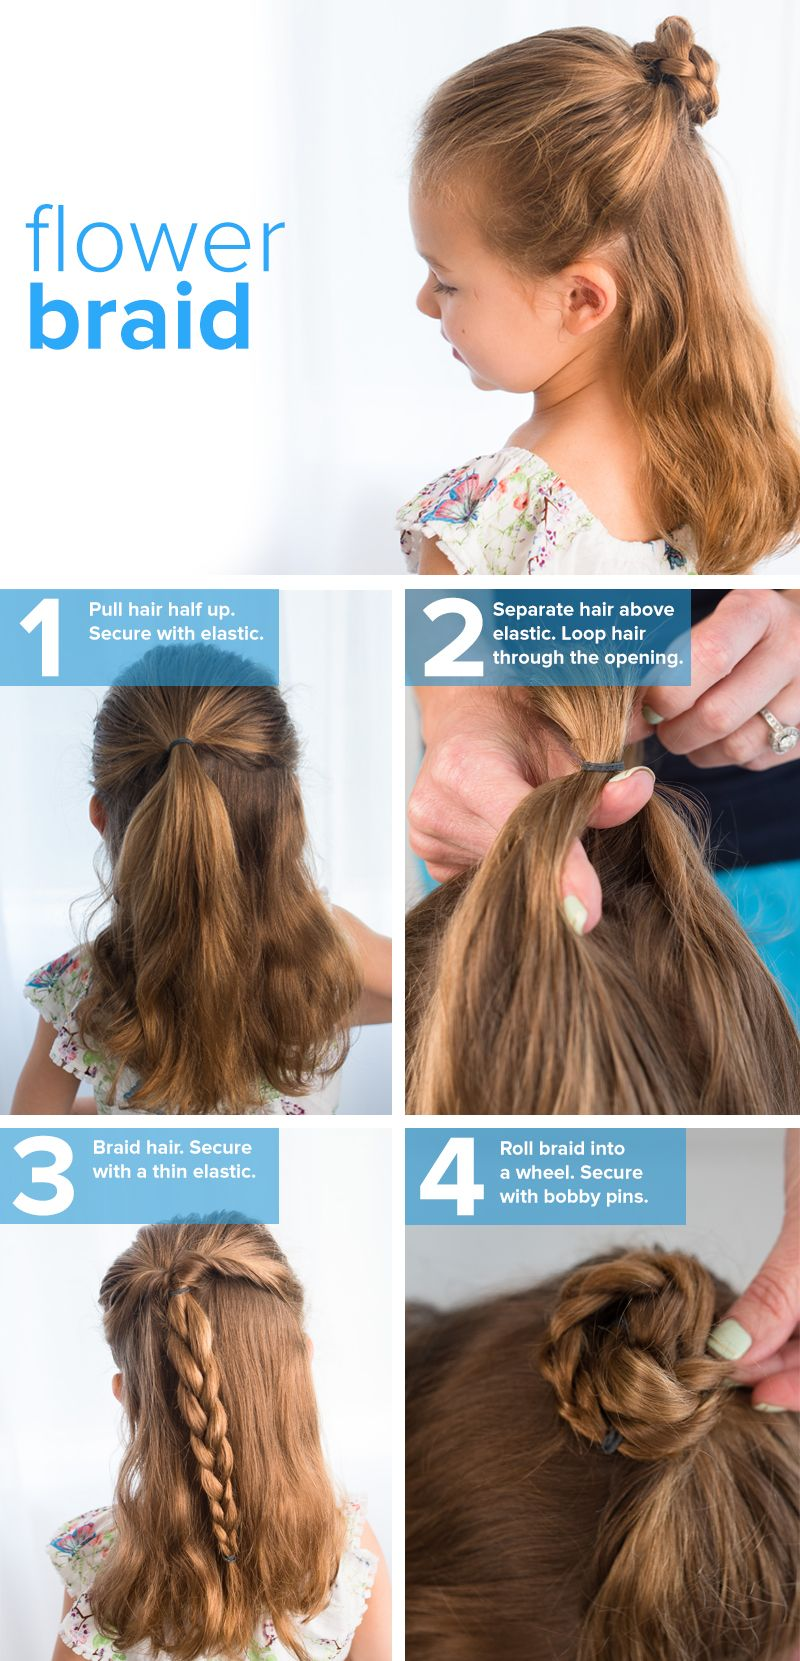 5 Easy Back To School Hairstyles For Girls Easy Hairstyles Cute Simple Hairstyles Medium Hair Styles